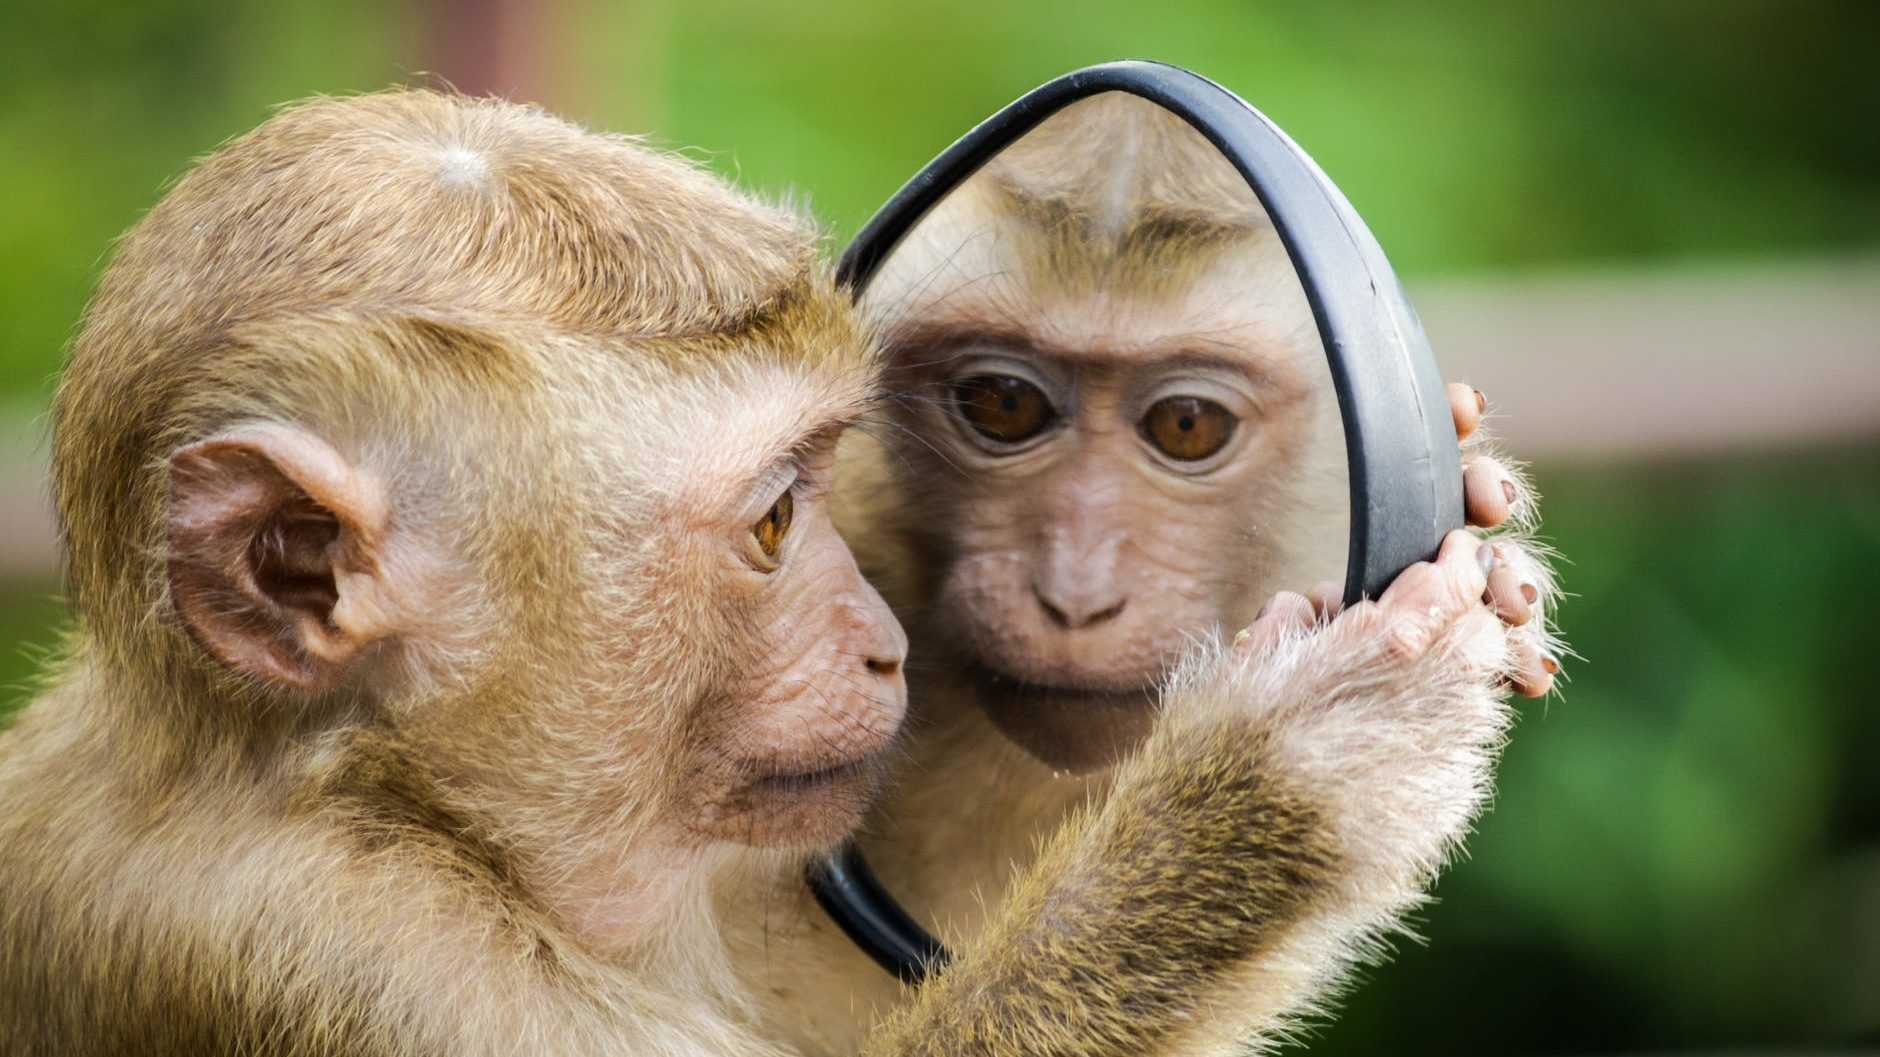 closeup photo of primate looking in a mirror.  Our dating behaviours evolve from our early ancestors